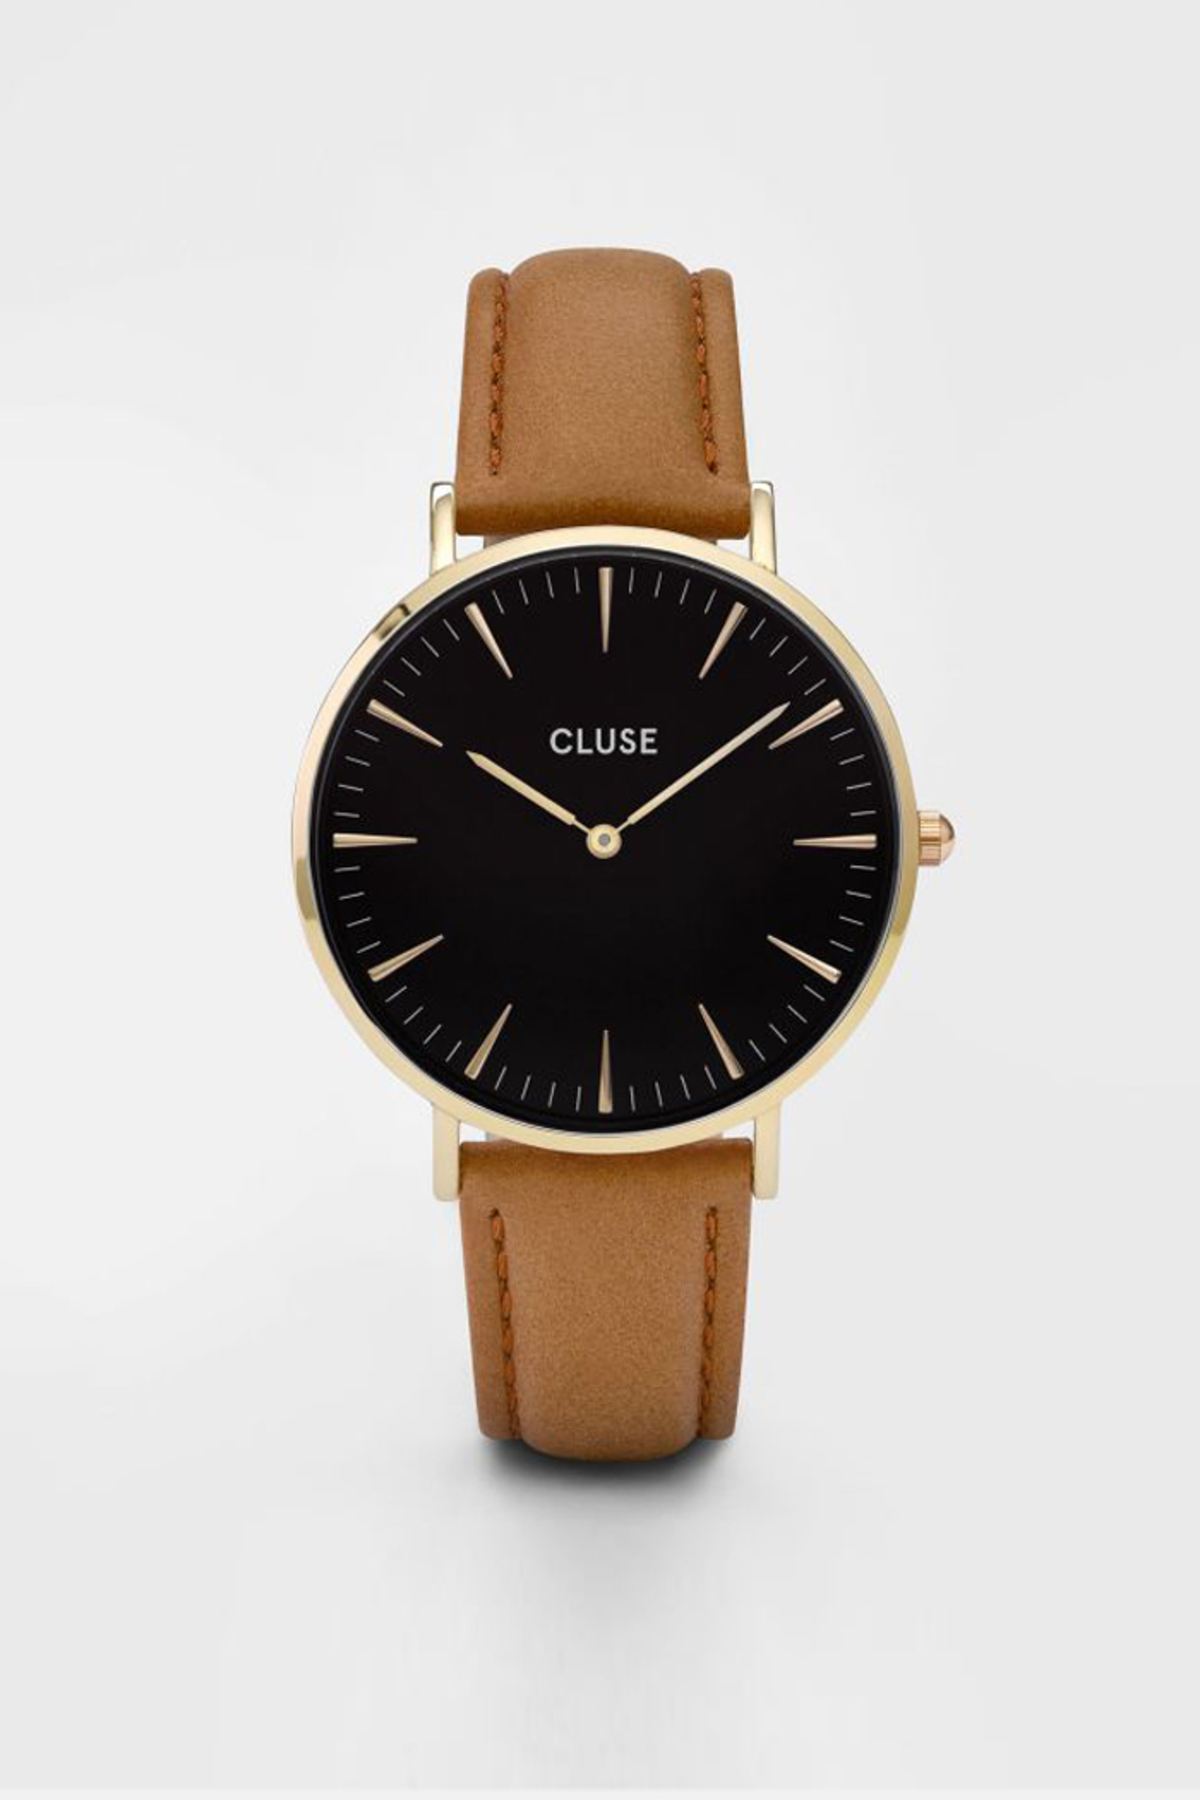 14 Best Minimalist Watches for Men